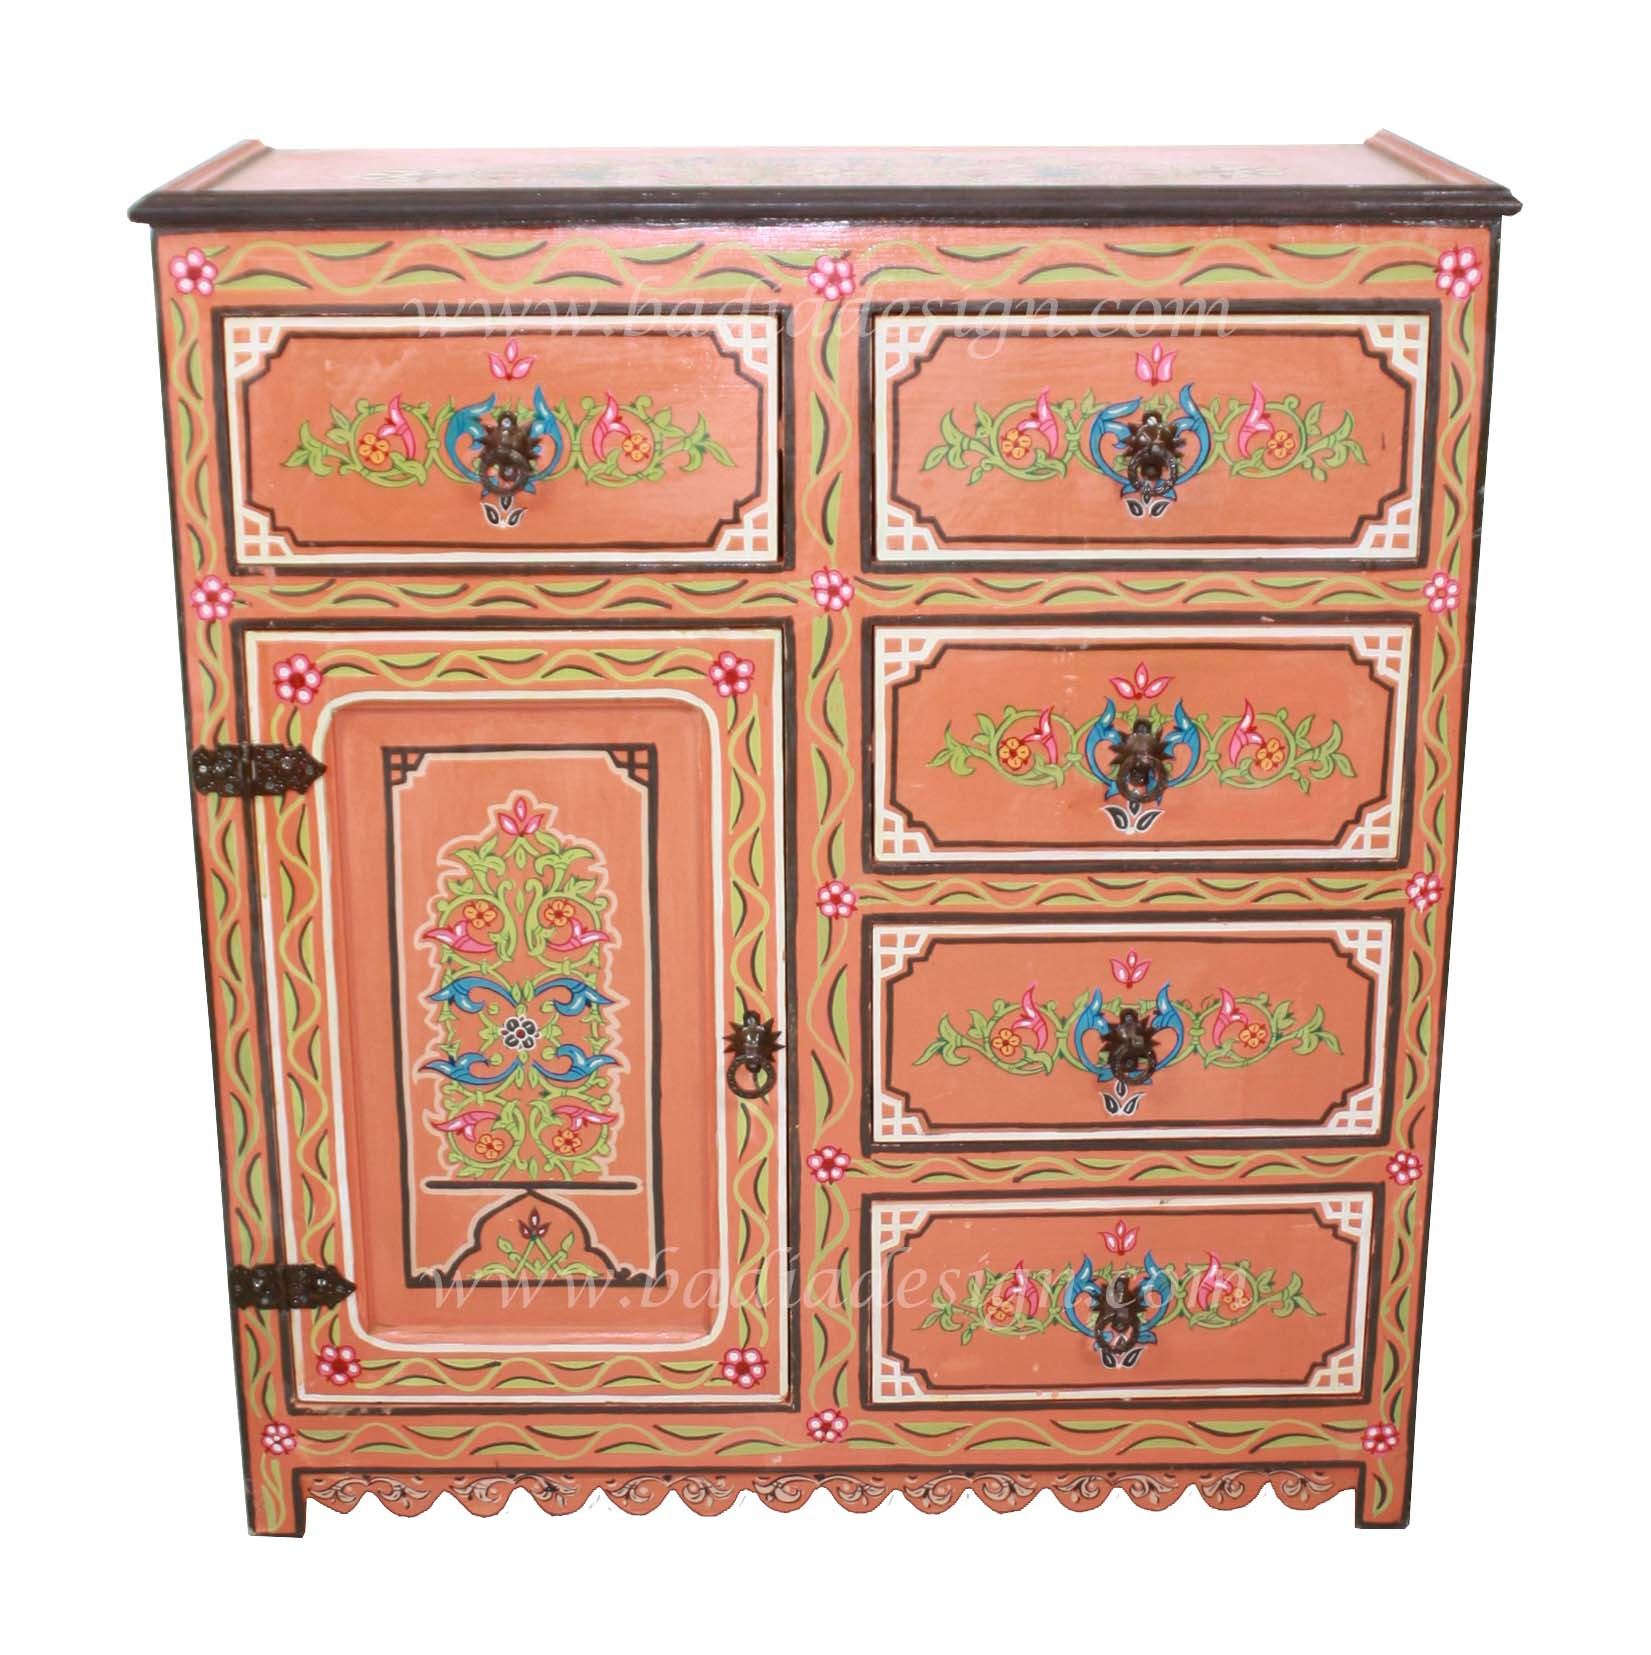 moroccan-hand-painted-wooden-cabinet-hp-ca039-1.jpg